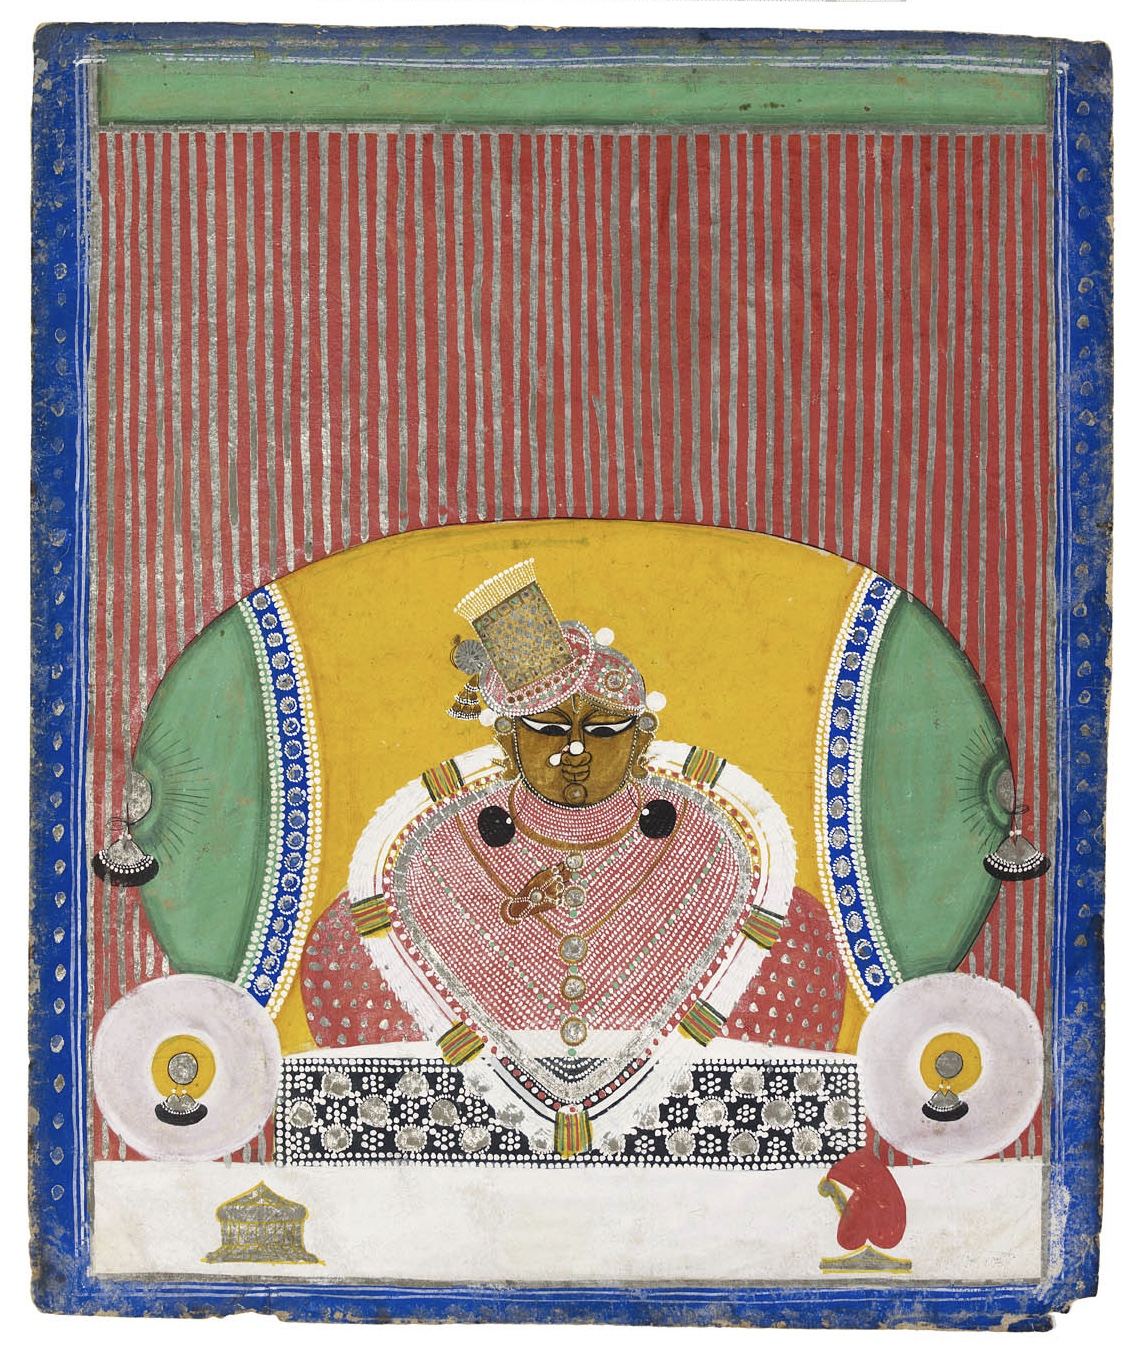 The svarup Navnitapriyaji Nathdwara, Rajasthan, India, 19th century Opaque watercolor and gold on paper. Height: 31 cm, 12 ¼ in Width: 26 cm, 10 ¼ in